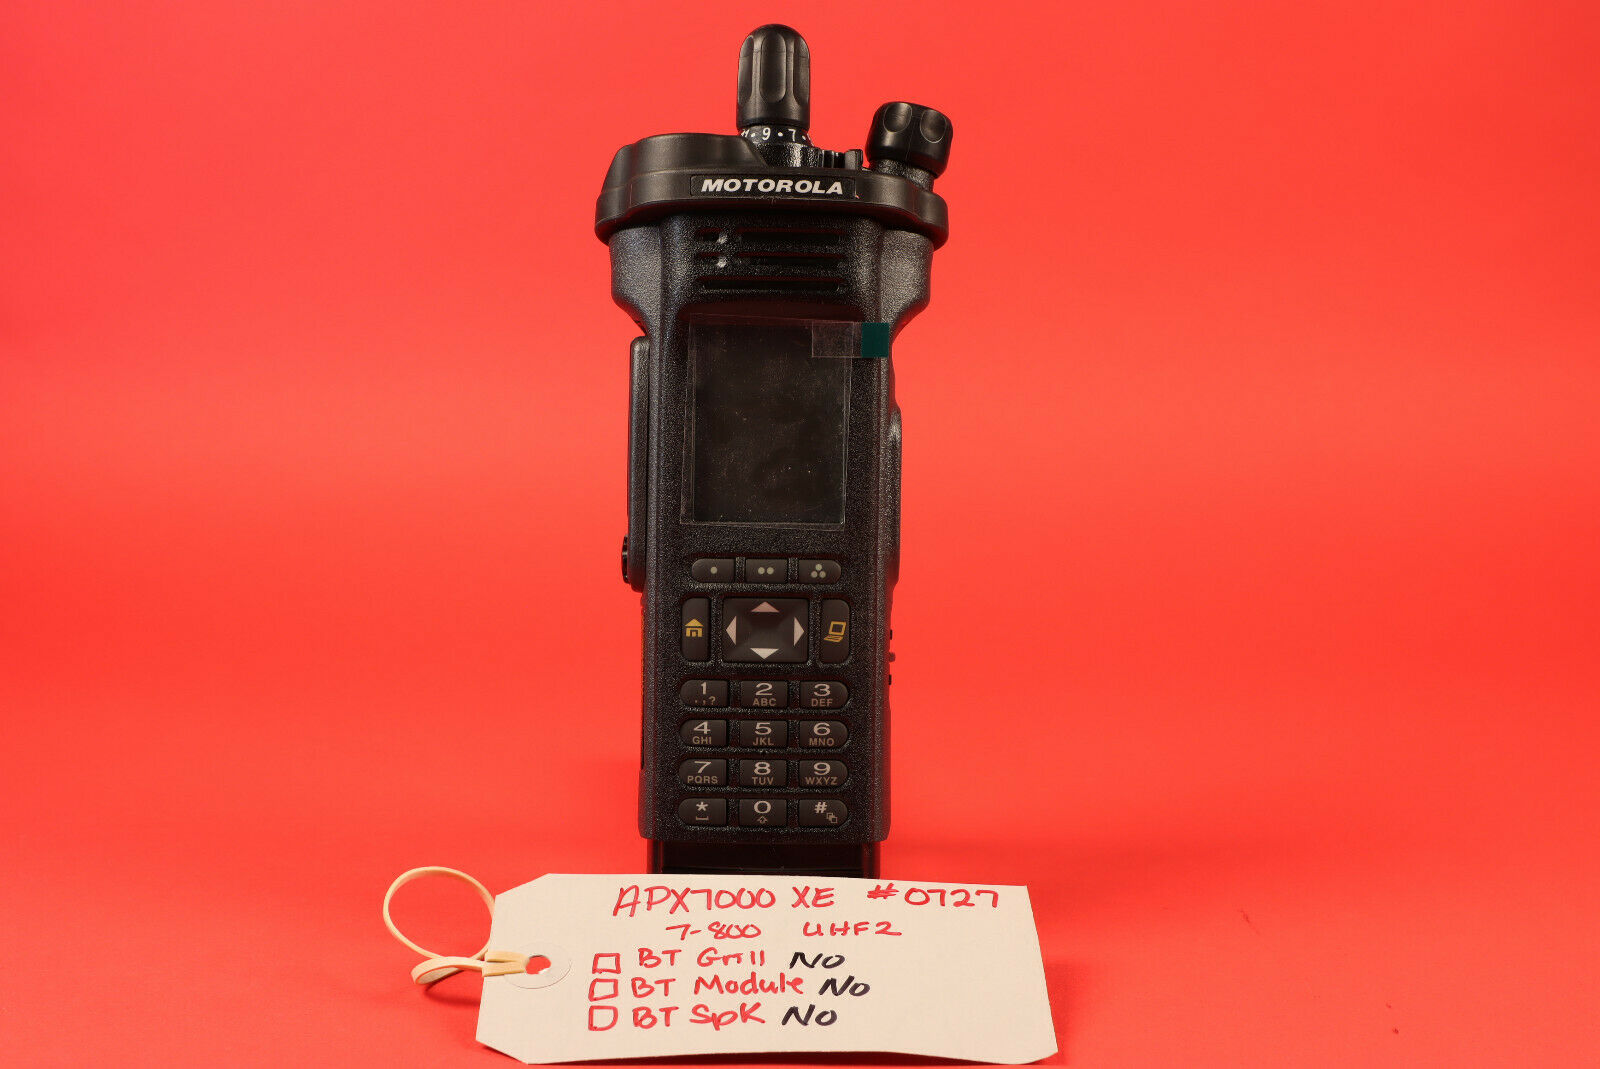 Motorola APX7000XE  UHF R2 450-520MHz & 700/800MHz + FPP+ 5 Algo's *No tag. Available Now for 2450.00